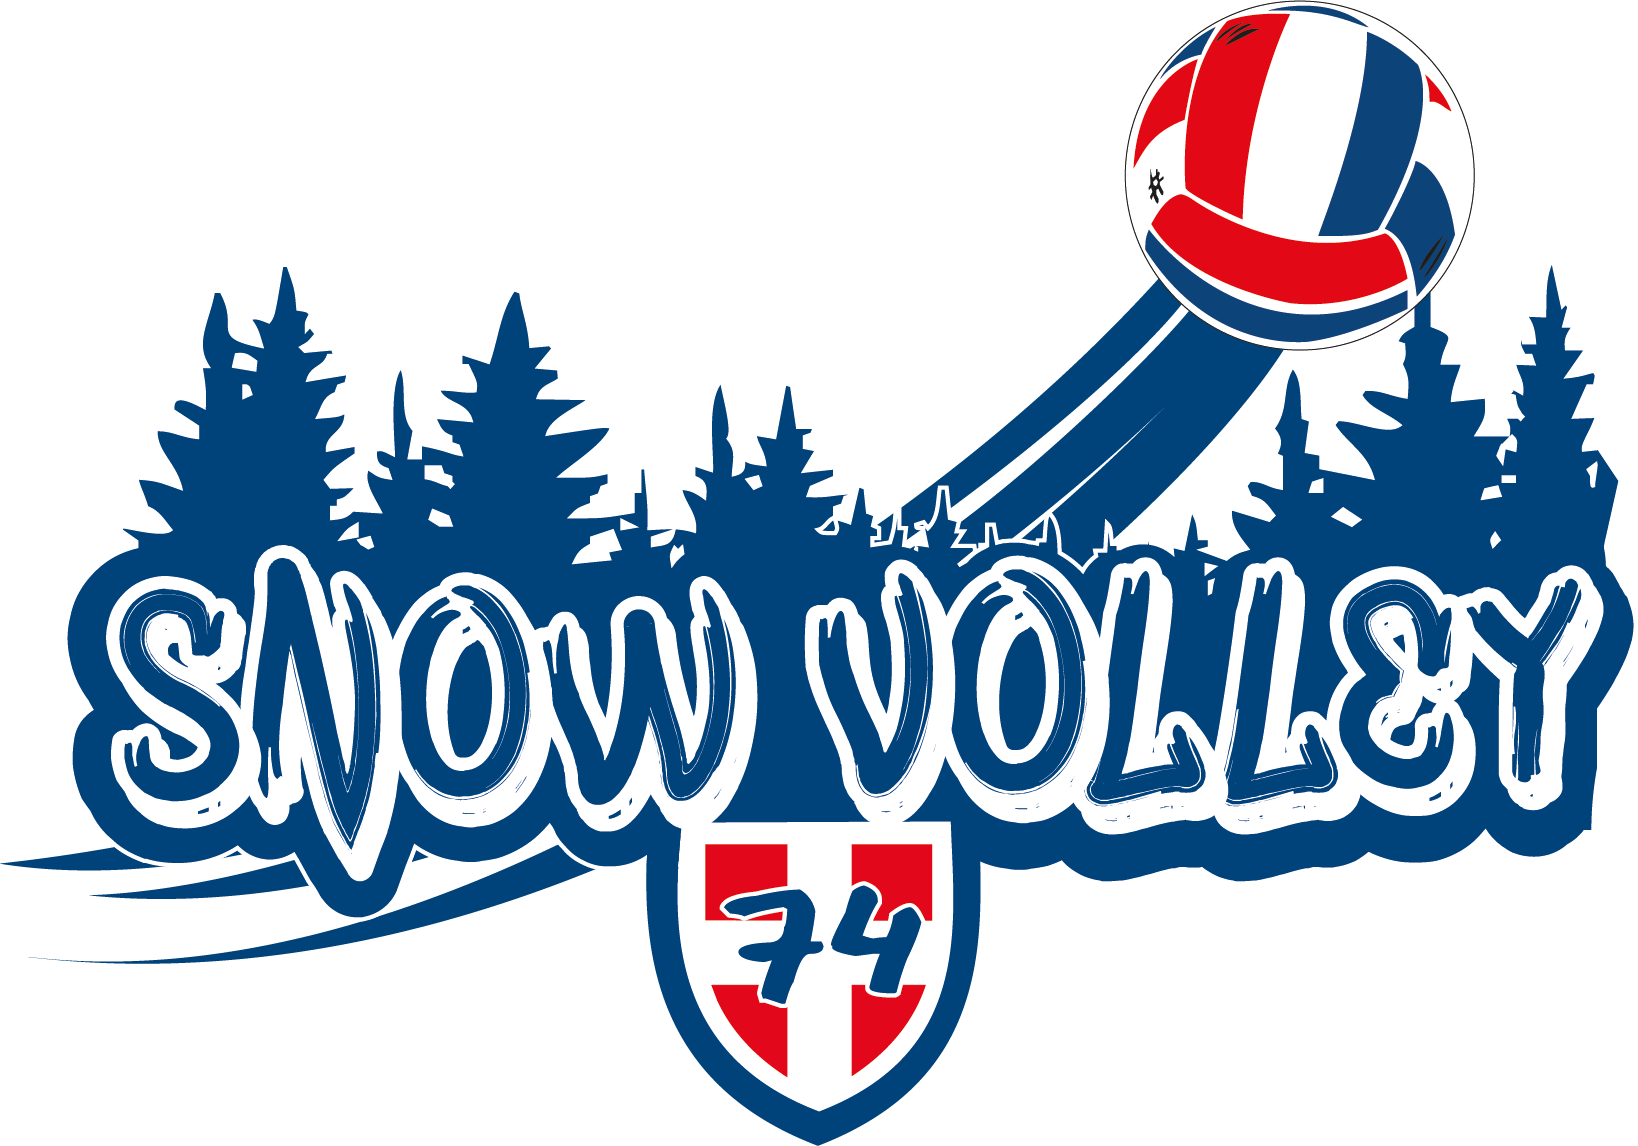 logo tournoi snow volley 2020